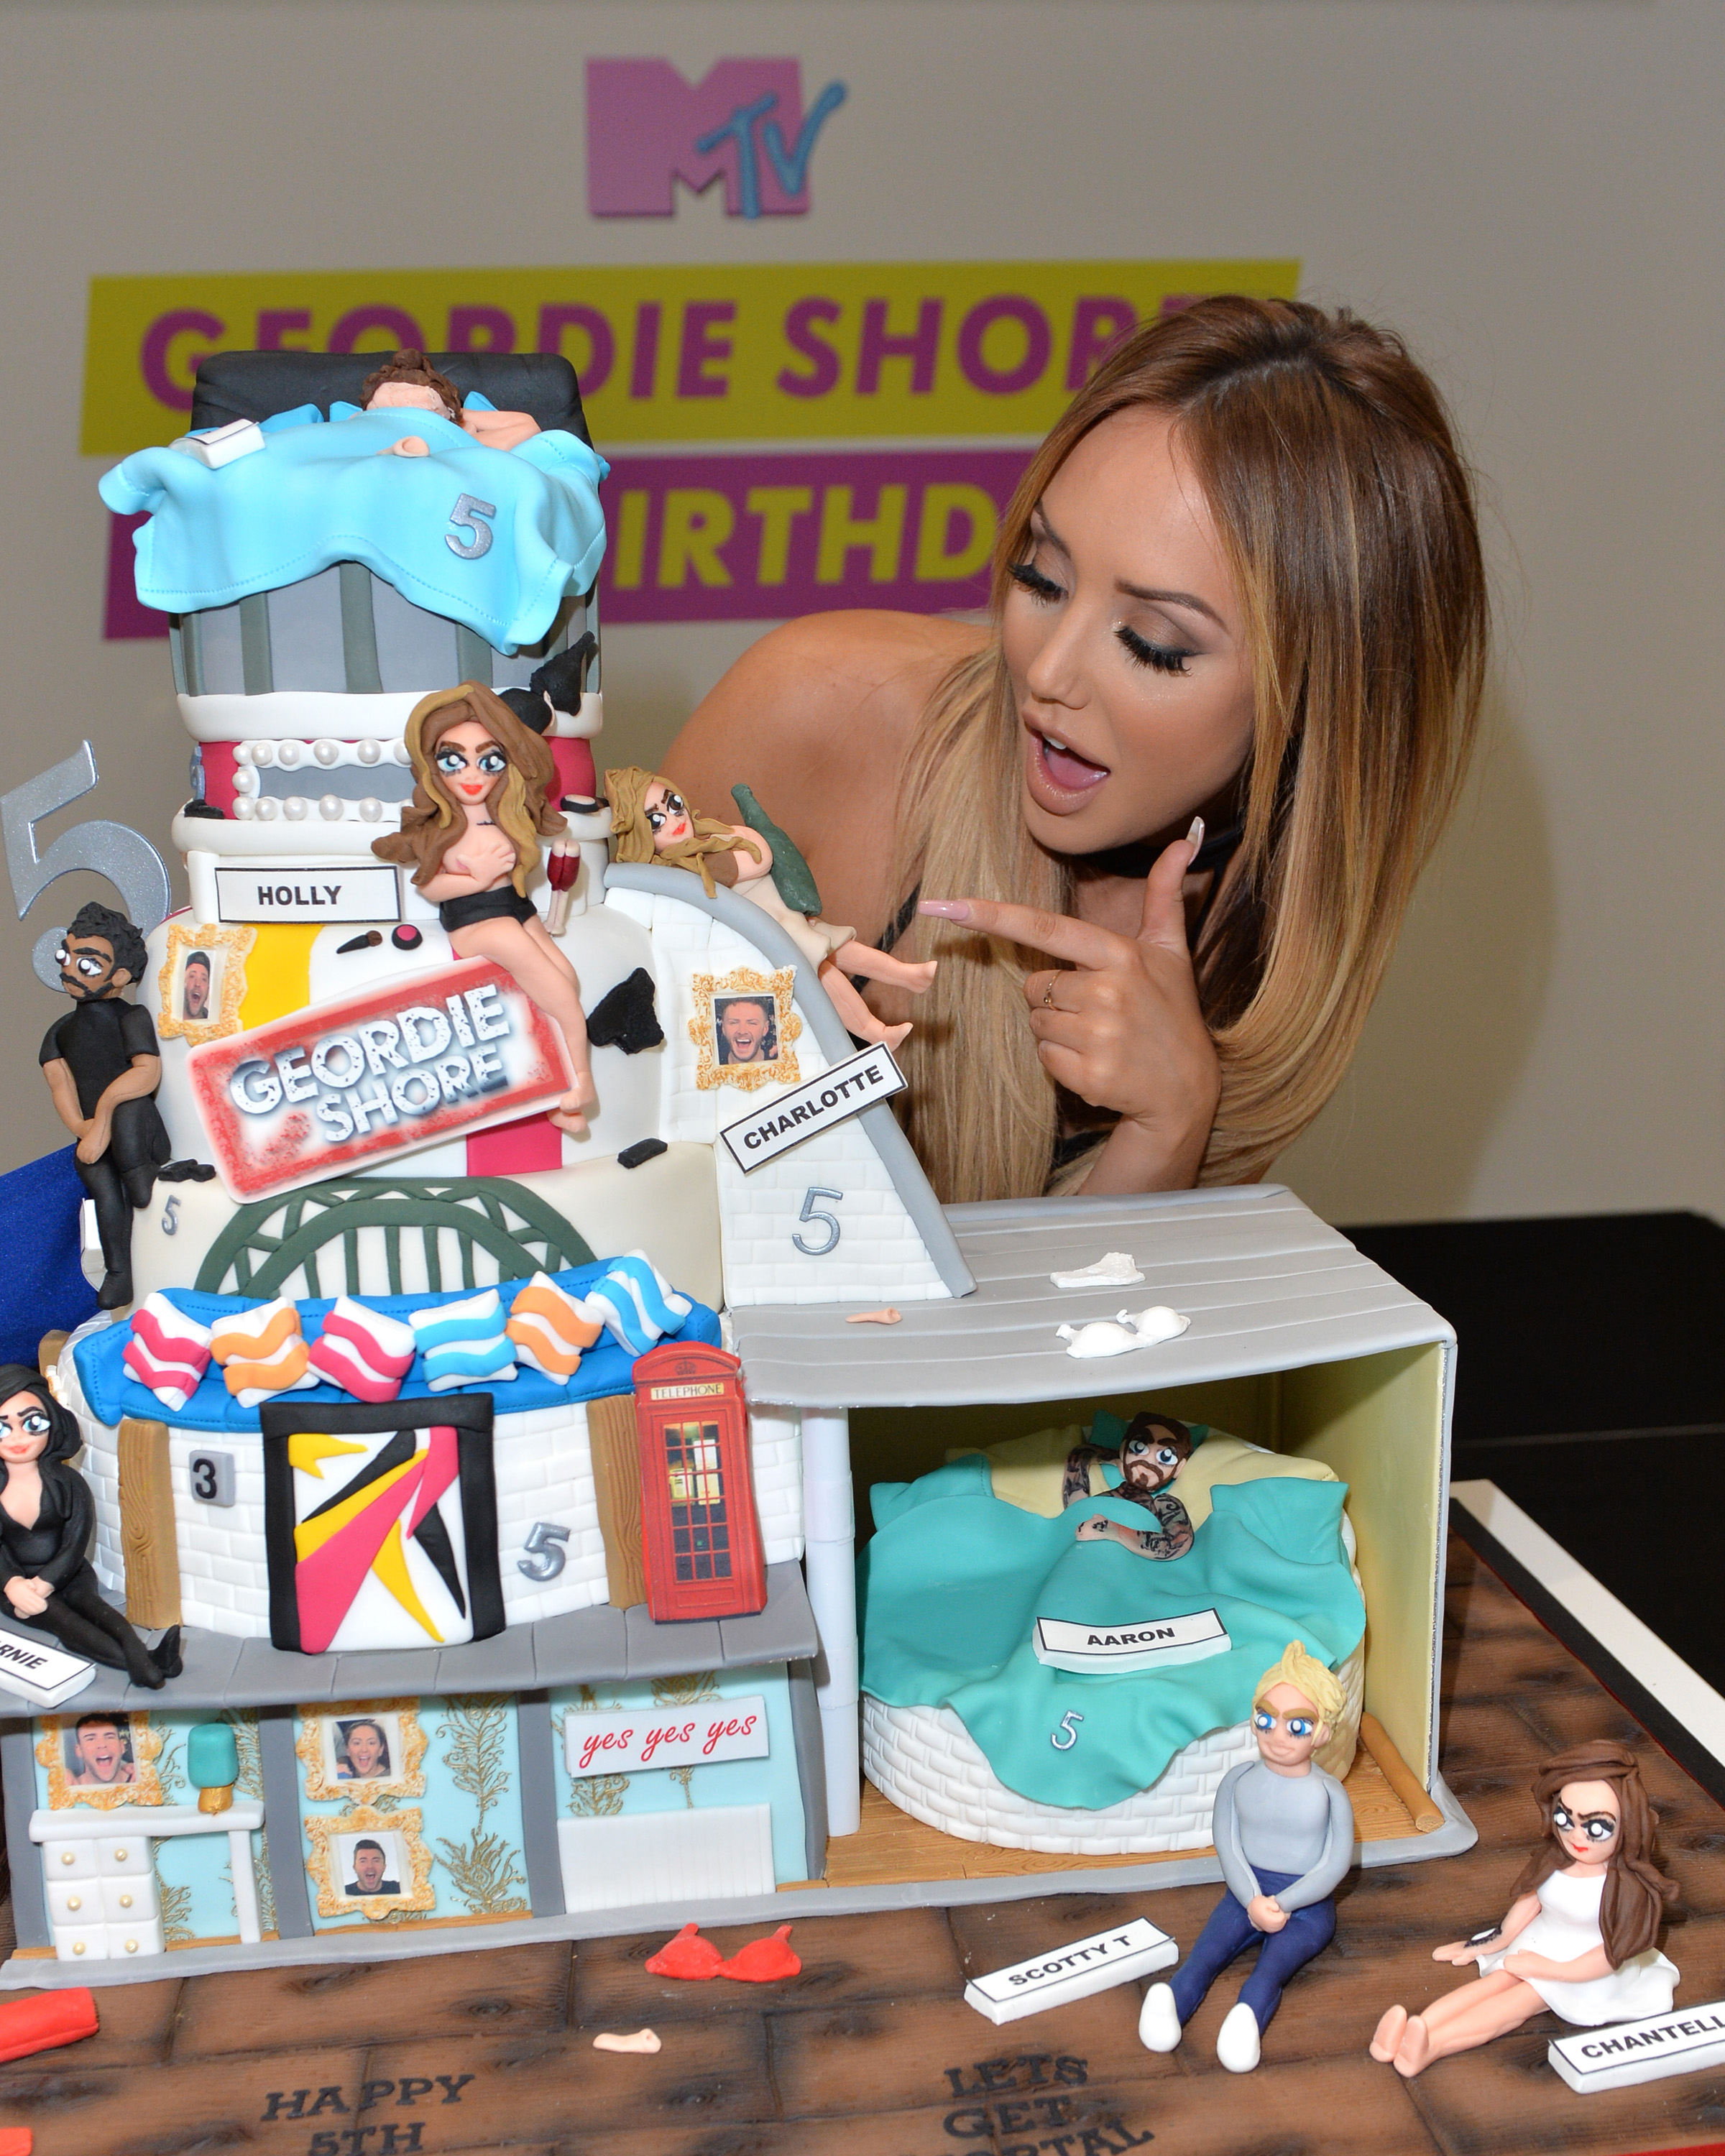 LONDON, ENGLAND - MAY 24: Charlotte-Letitia Crosby of Geordie Shore celebrate their fifth birthday at MTV London on May 24, 2016 in London, England. (Photo by Anthony Harvey/Getty Images) *** Local Caption *** Charlotte-Letitia Crosby